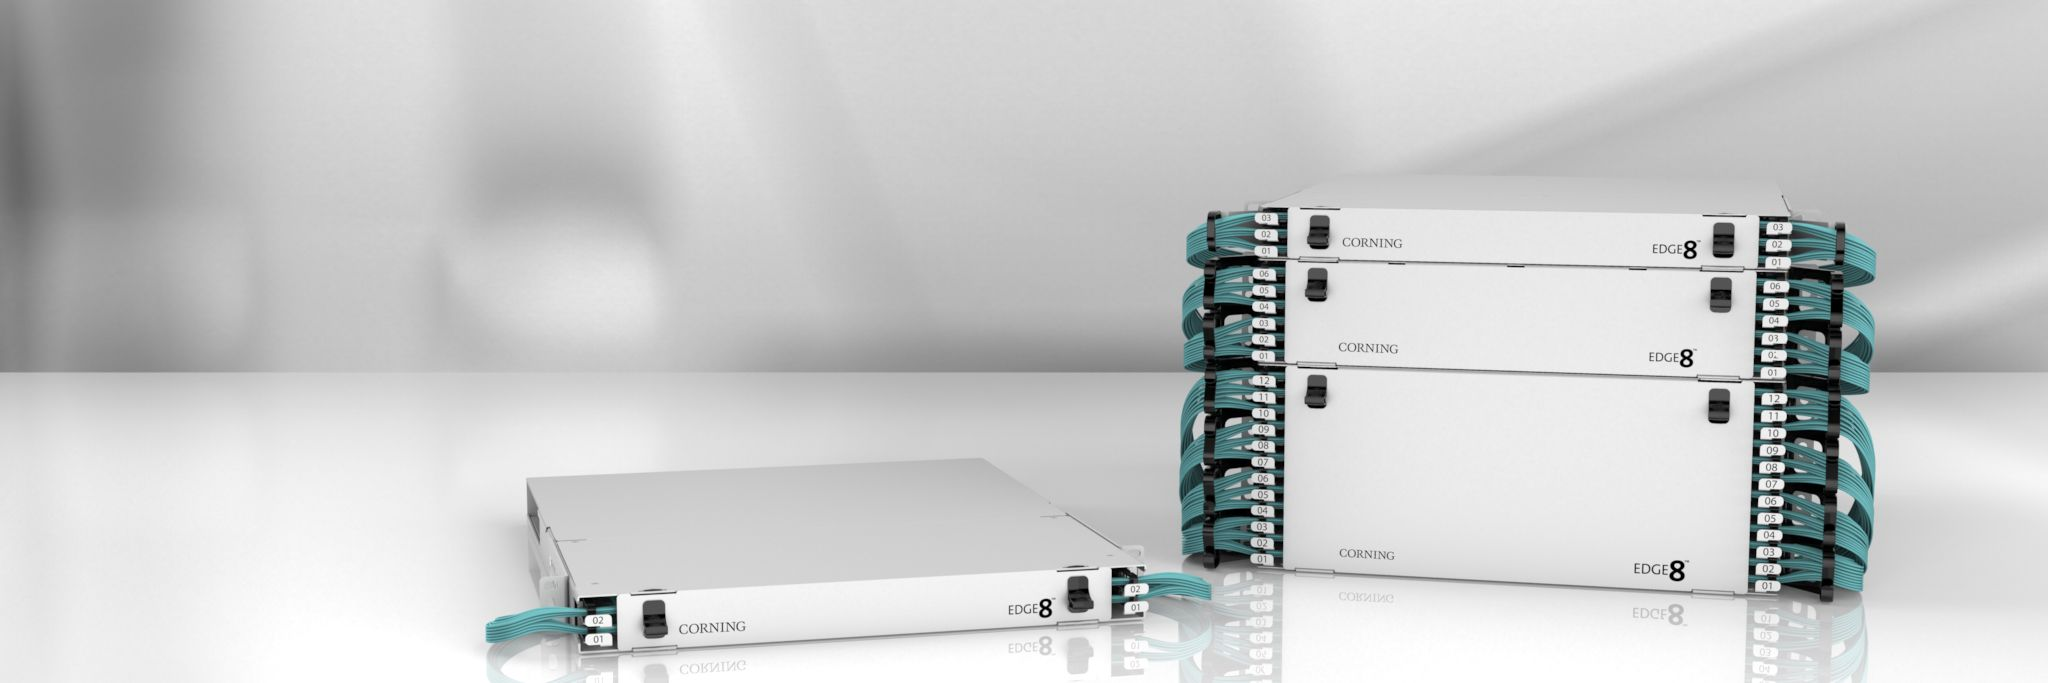 EDGE8™ - Preterminated Optical Cabling Systems for Data Centers ...